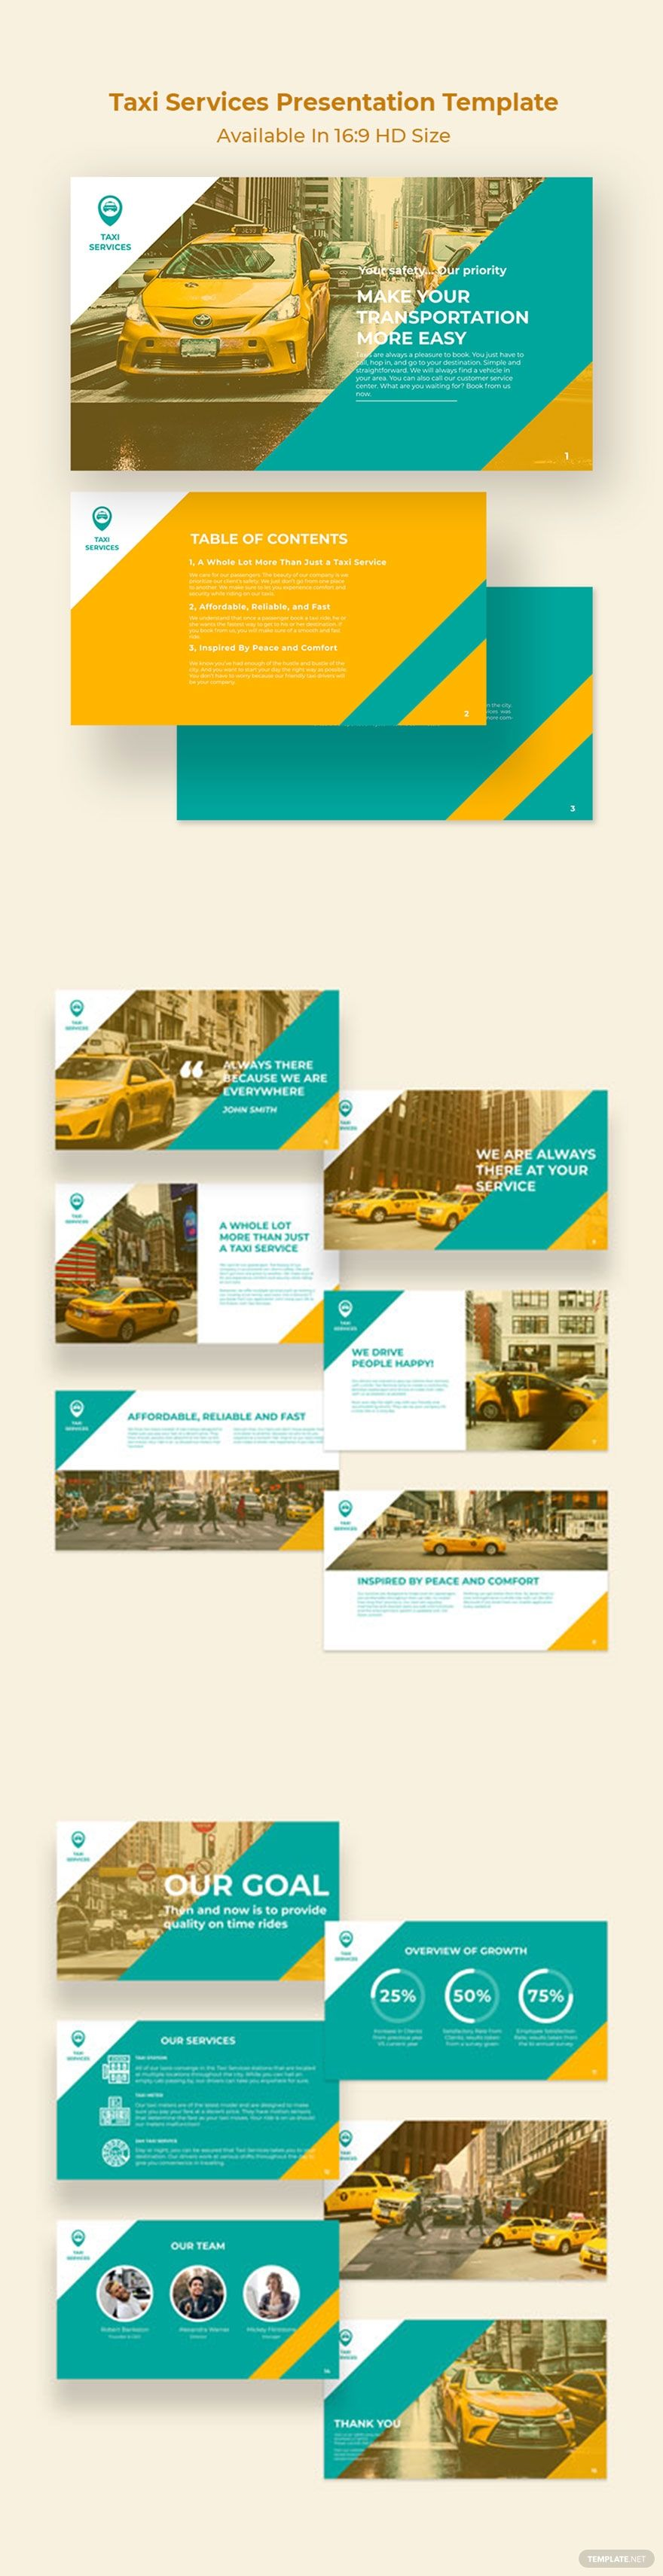 Taxi Services Presentation Template Pdf Word Apple Pages Google Docs Powerpoint Apple Keynote Presentation Templates Rack Card Templates Taxi Service